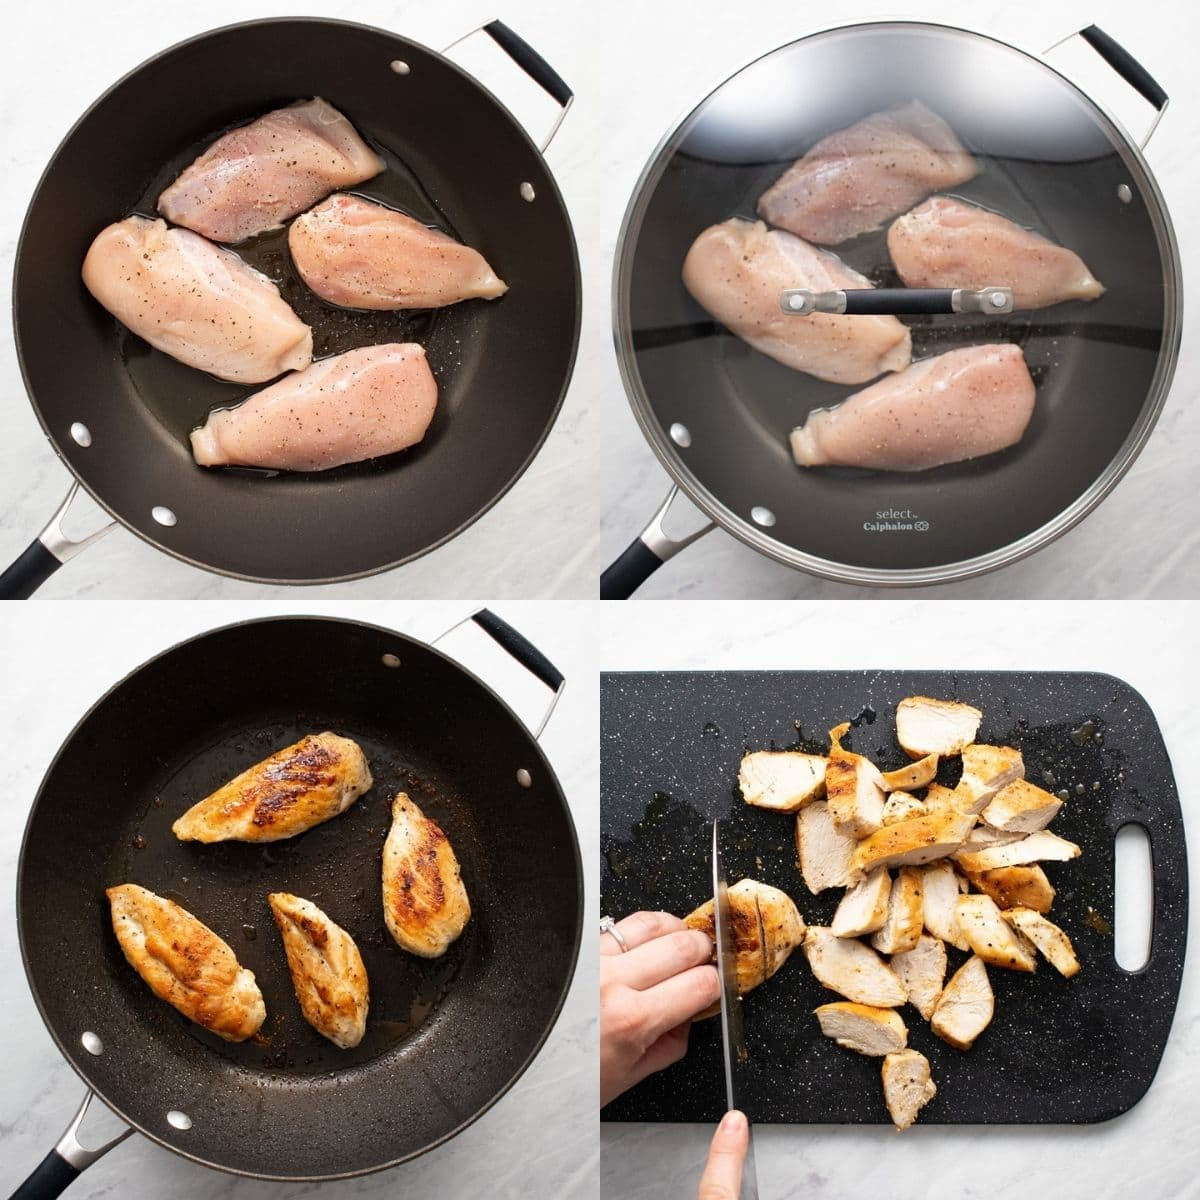 Four images showing the steps for pan-frying chicken breasts. First image: Chicken breasts seasoned with salt and pepper in a large skillet with avocado oil. Second image: The skillet with the chicken is covered with a lid. Third image: The chicken is golden-brown and fully-cooked in the skillet. Fourth image: The cooked chicken is being sliced on a cutting board.